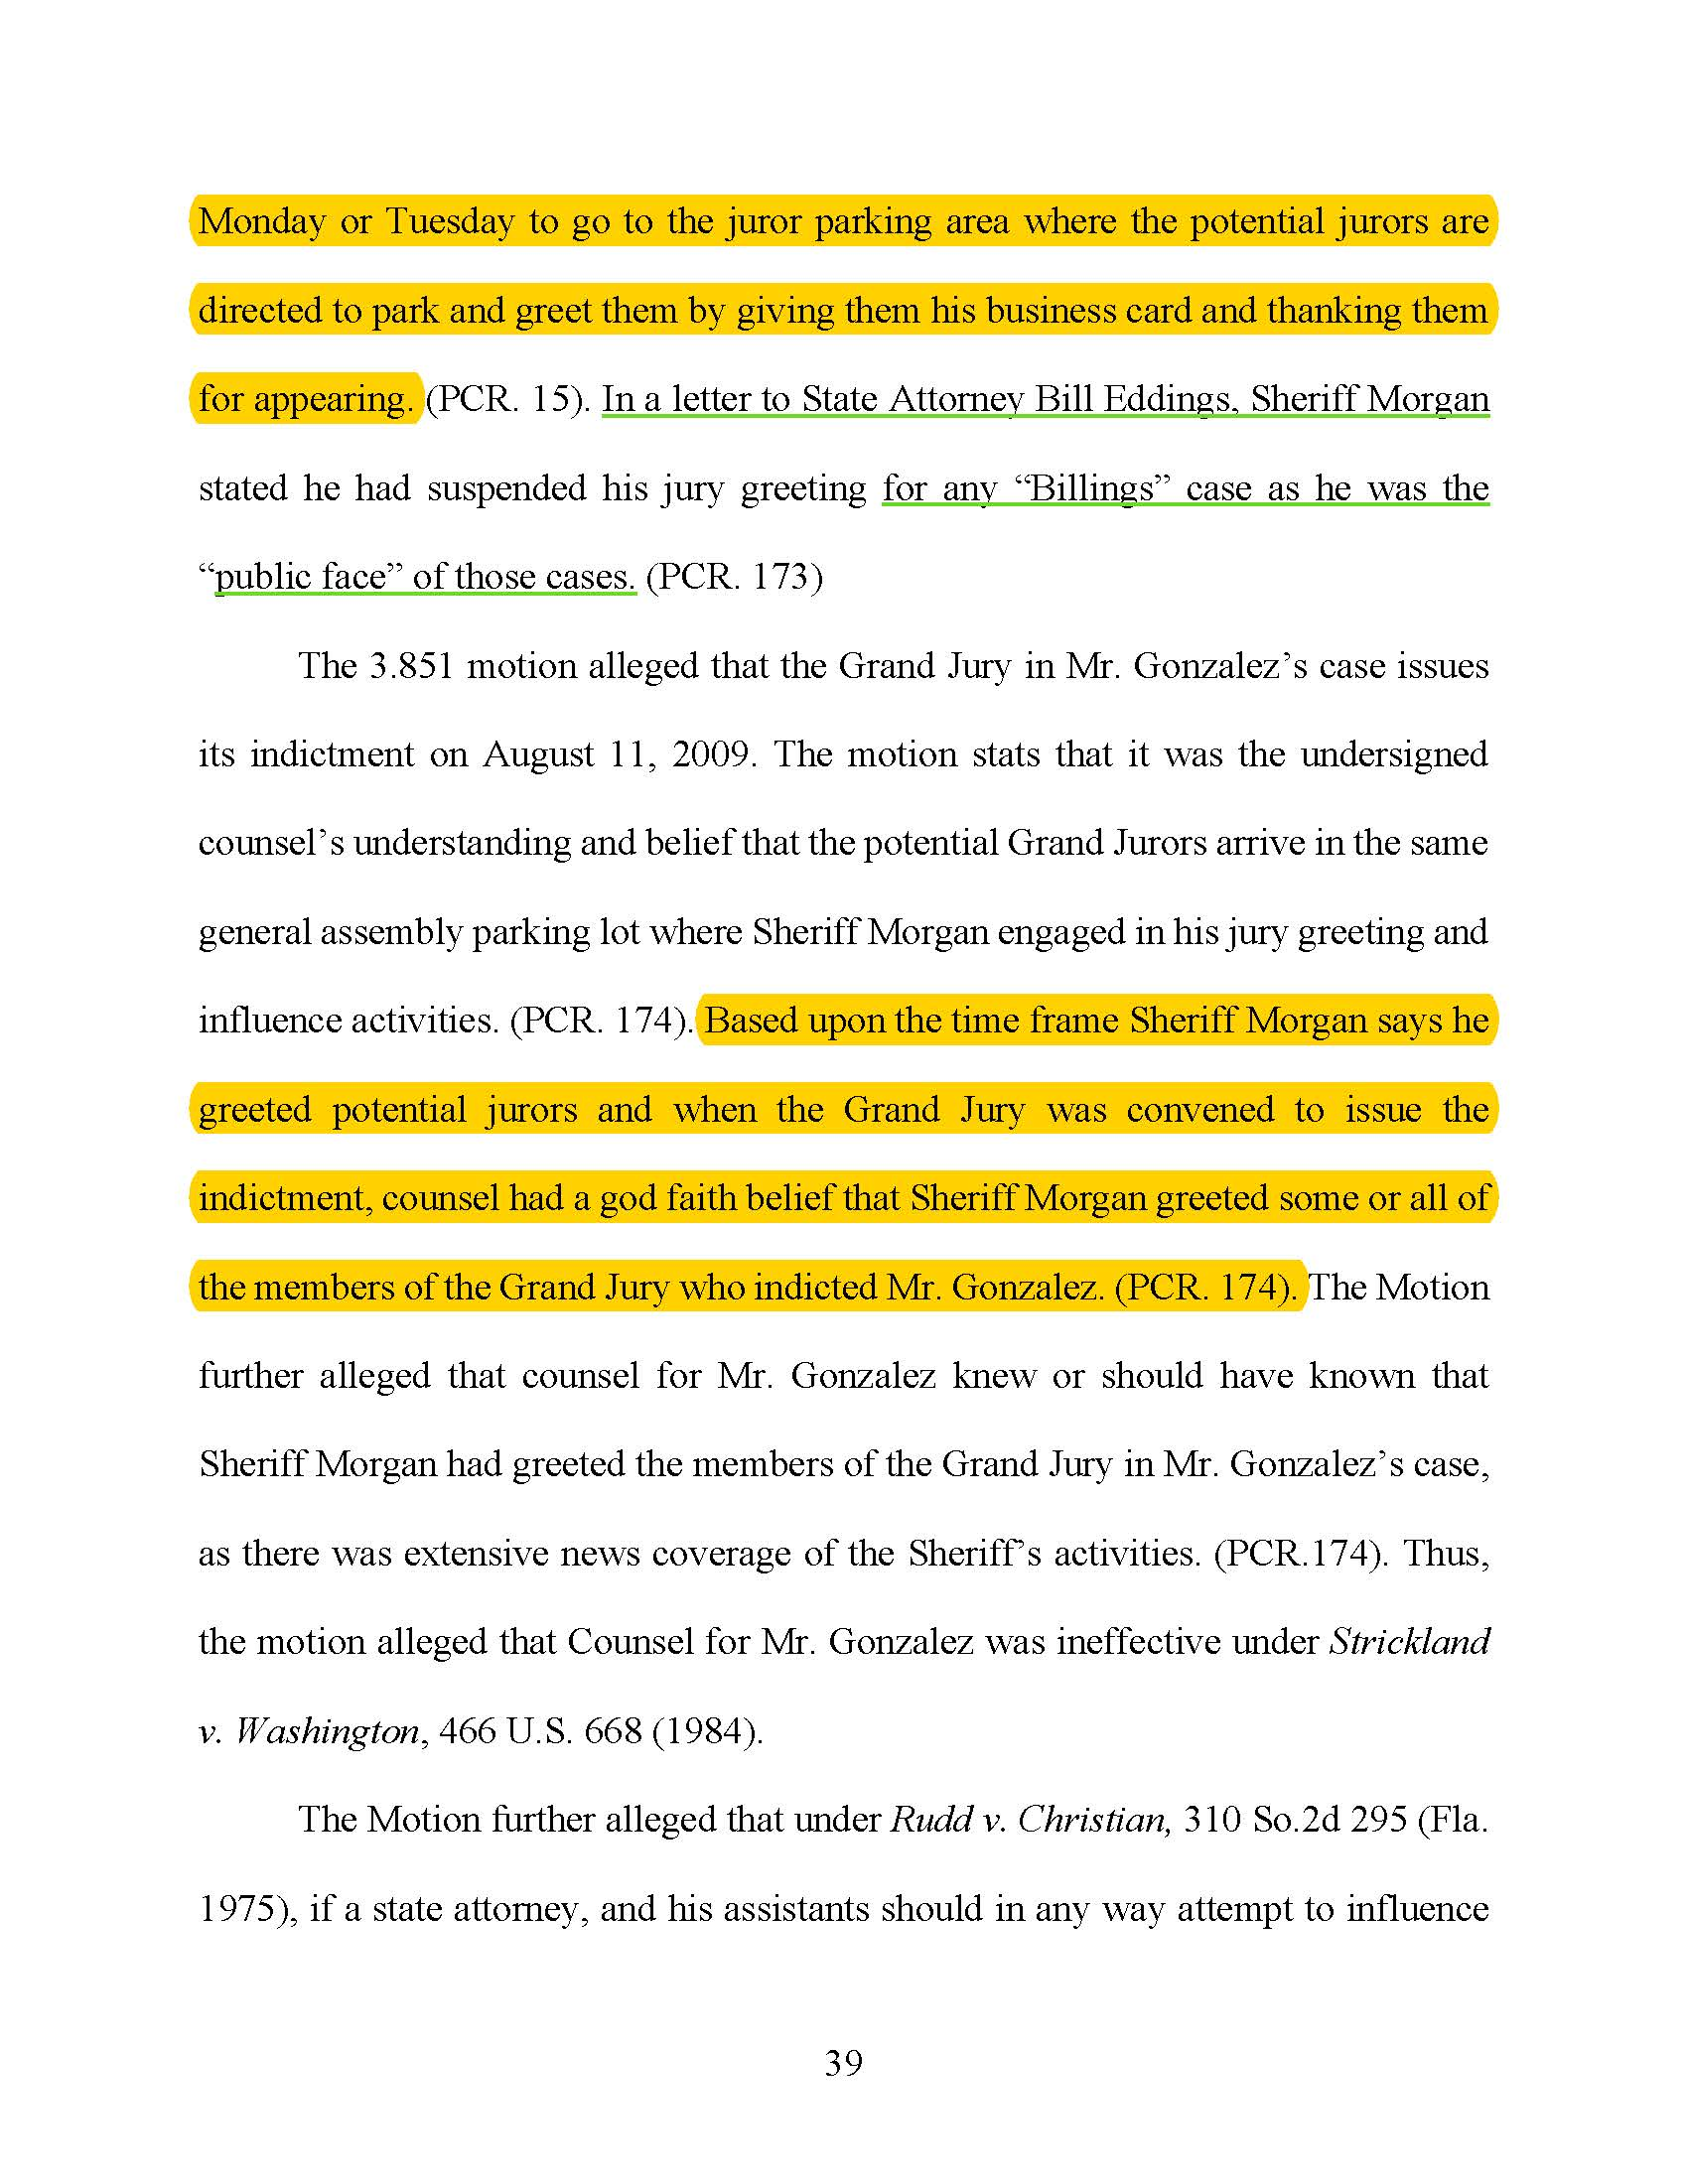 pat appeal brief_Page_42